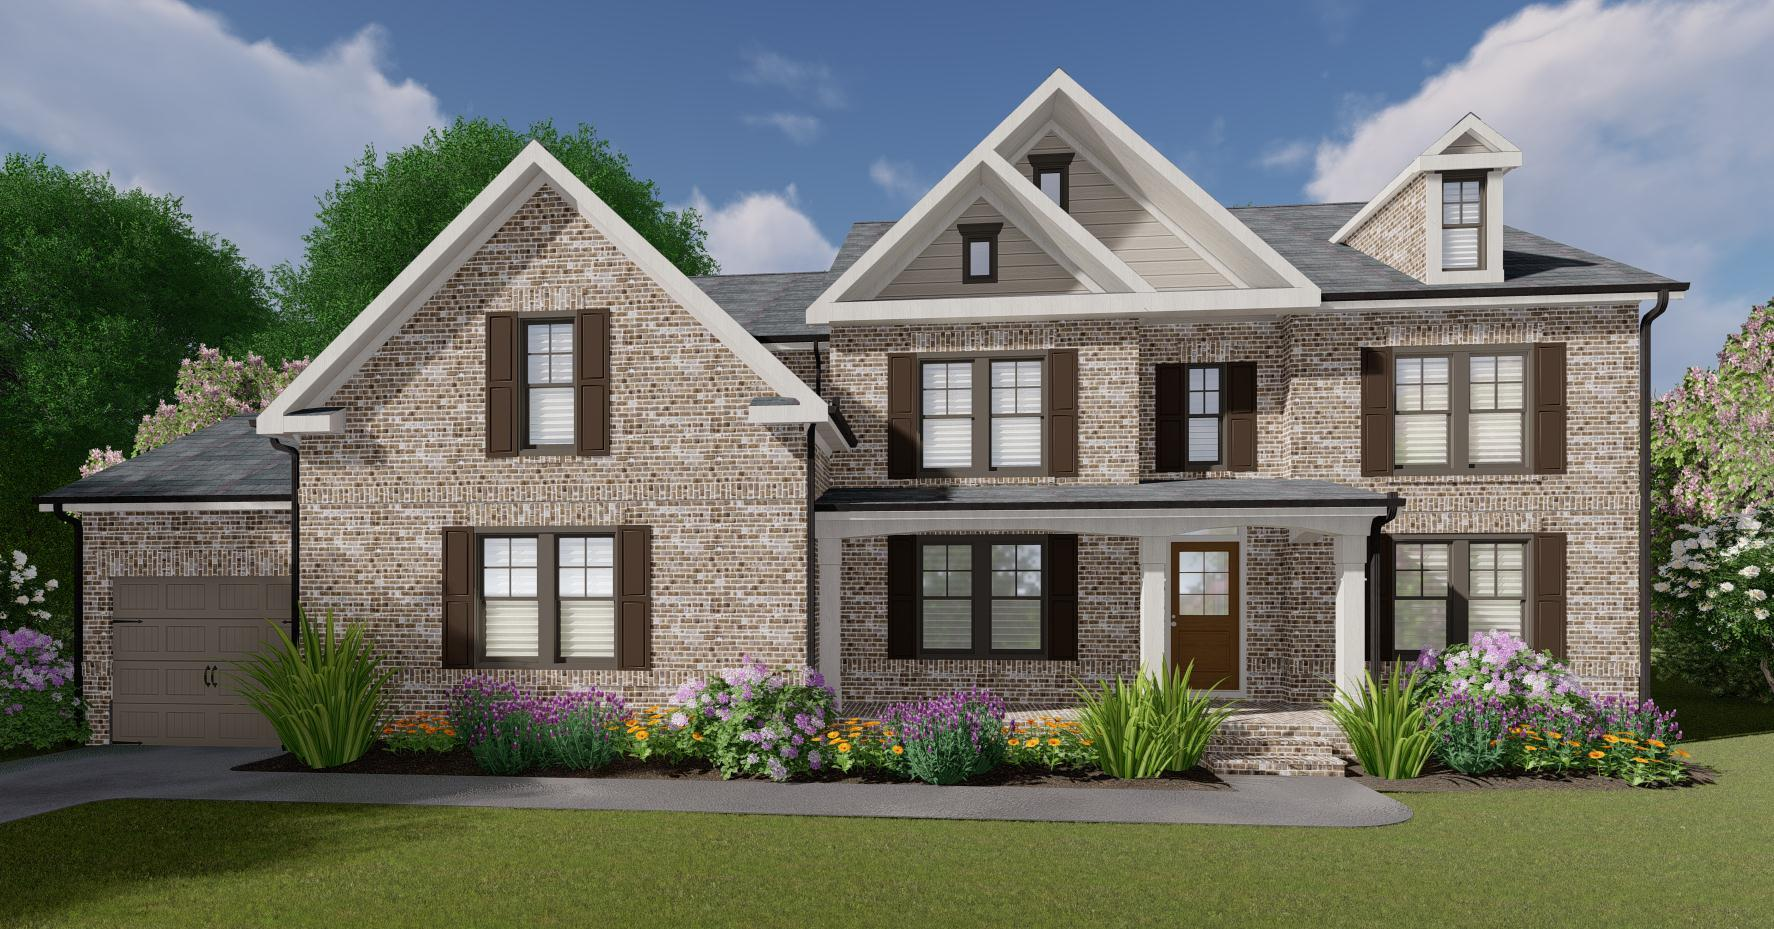 The Avalon by Chafin Communities